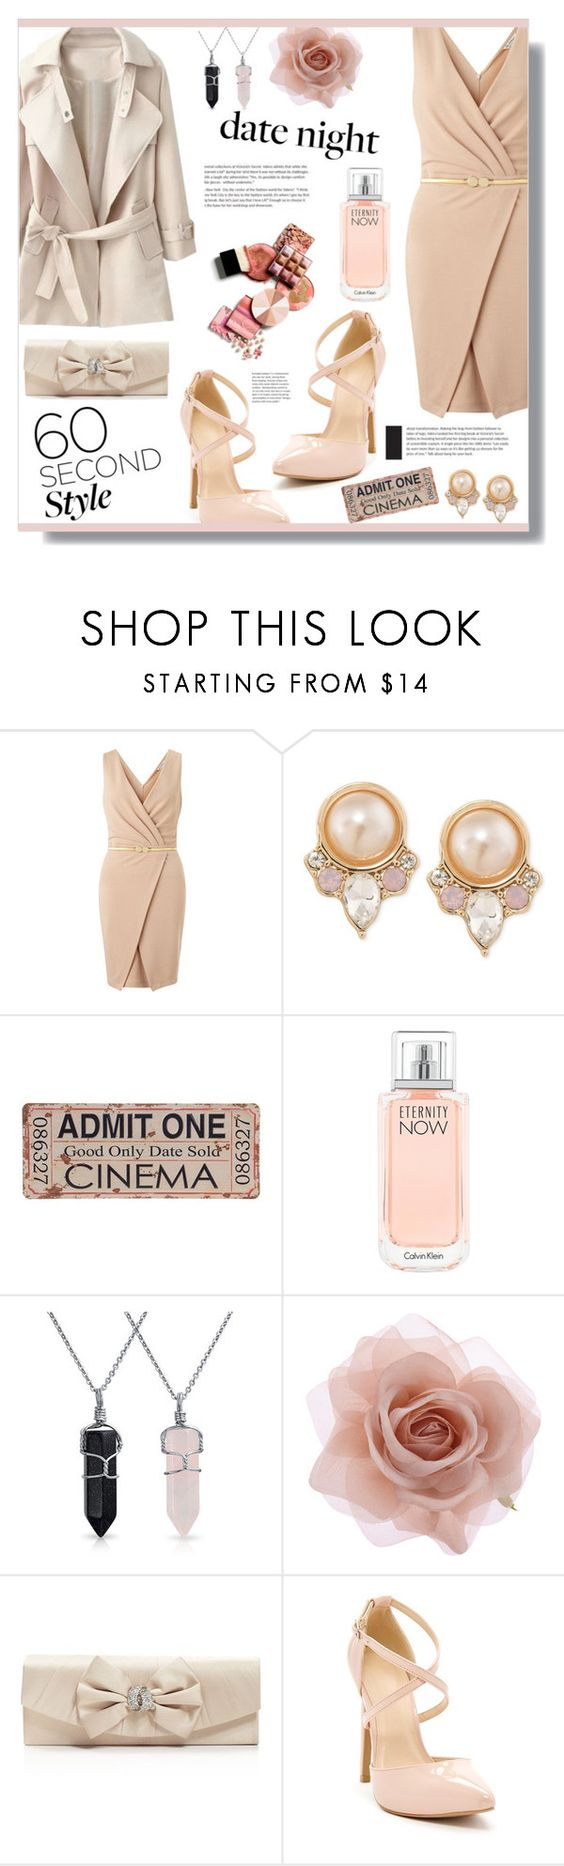 """""""::60 second date night style::"""" by sinesnsingularities ❤ liked on Polyvore featuring Miss Selfridge, Carolee, Calvin Klein, Bling Jewelry, Accessorize, Jessica McClintock, women's clothing, women, female and woman"""